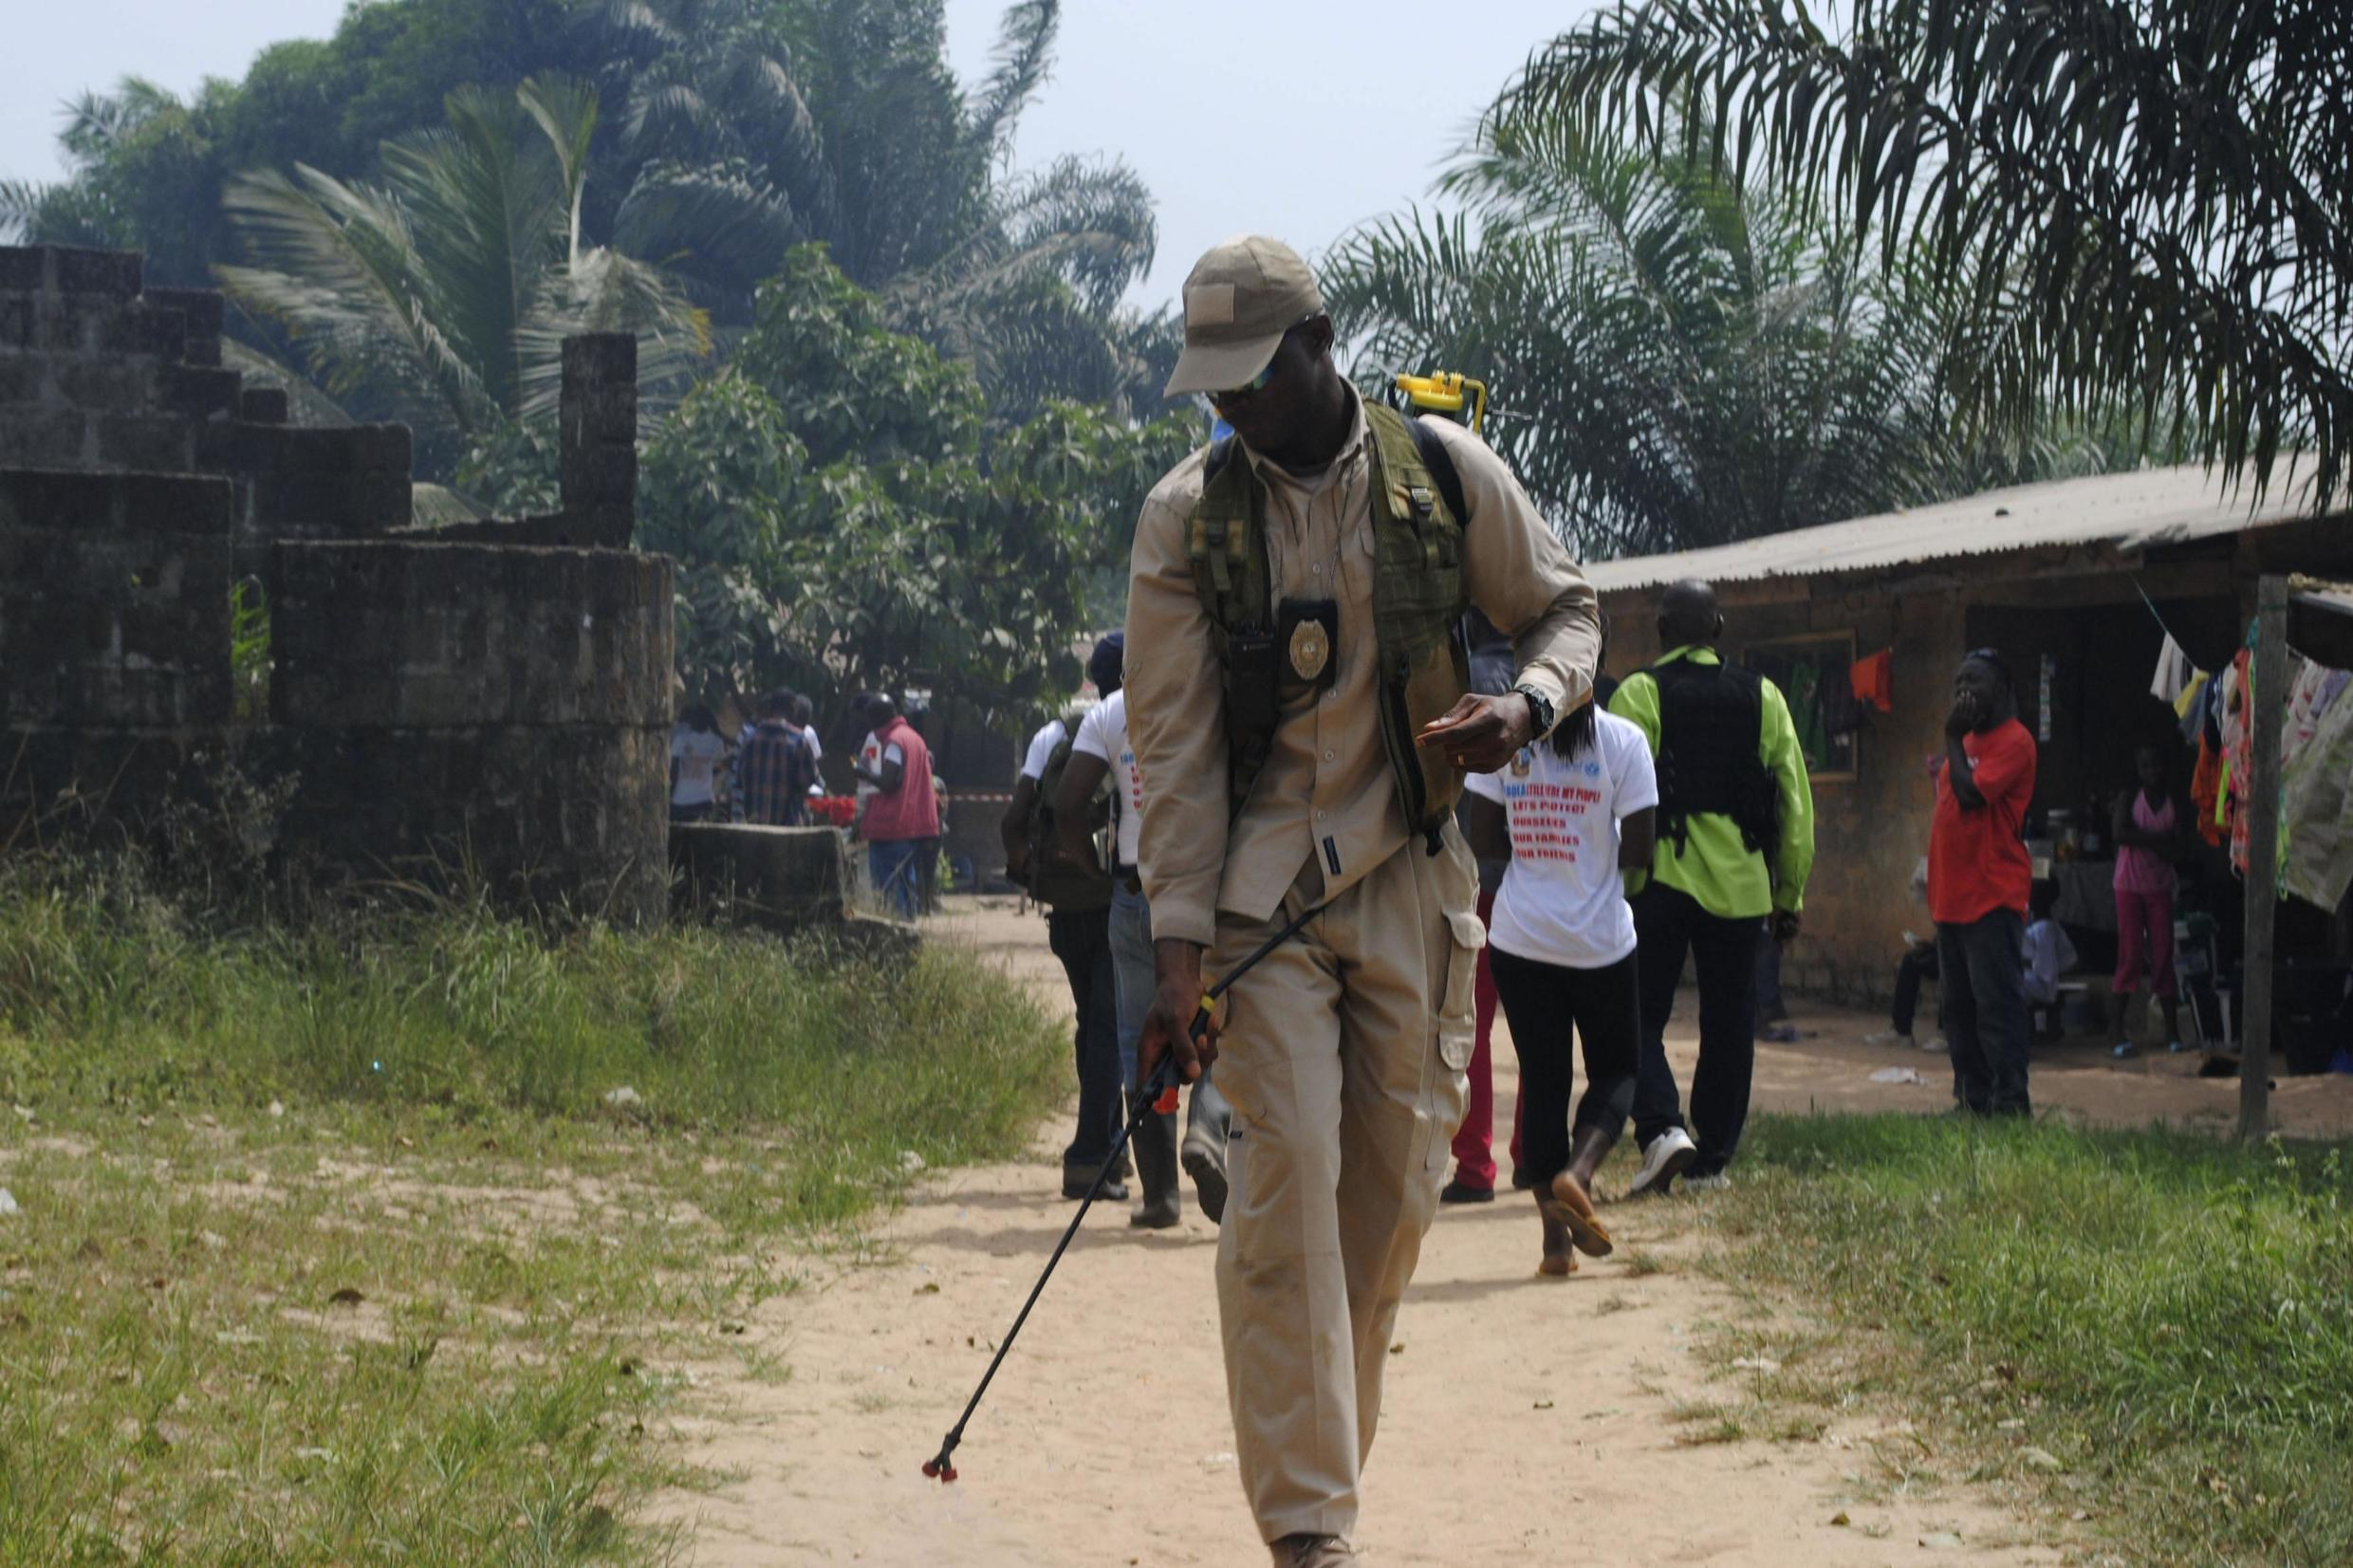 A health worker disinfects a road in the Paynesville neighborhood of Monrovia in Liberia